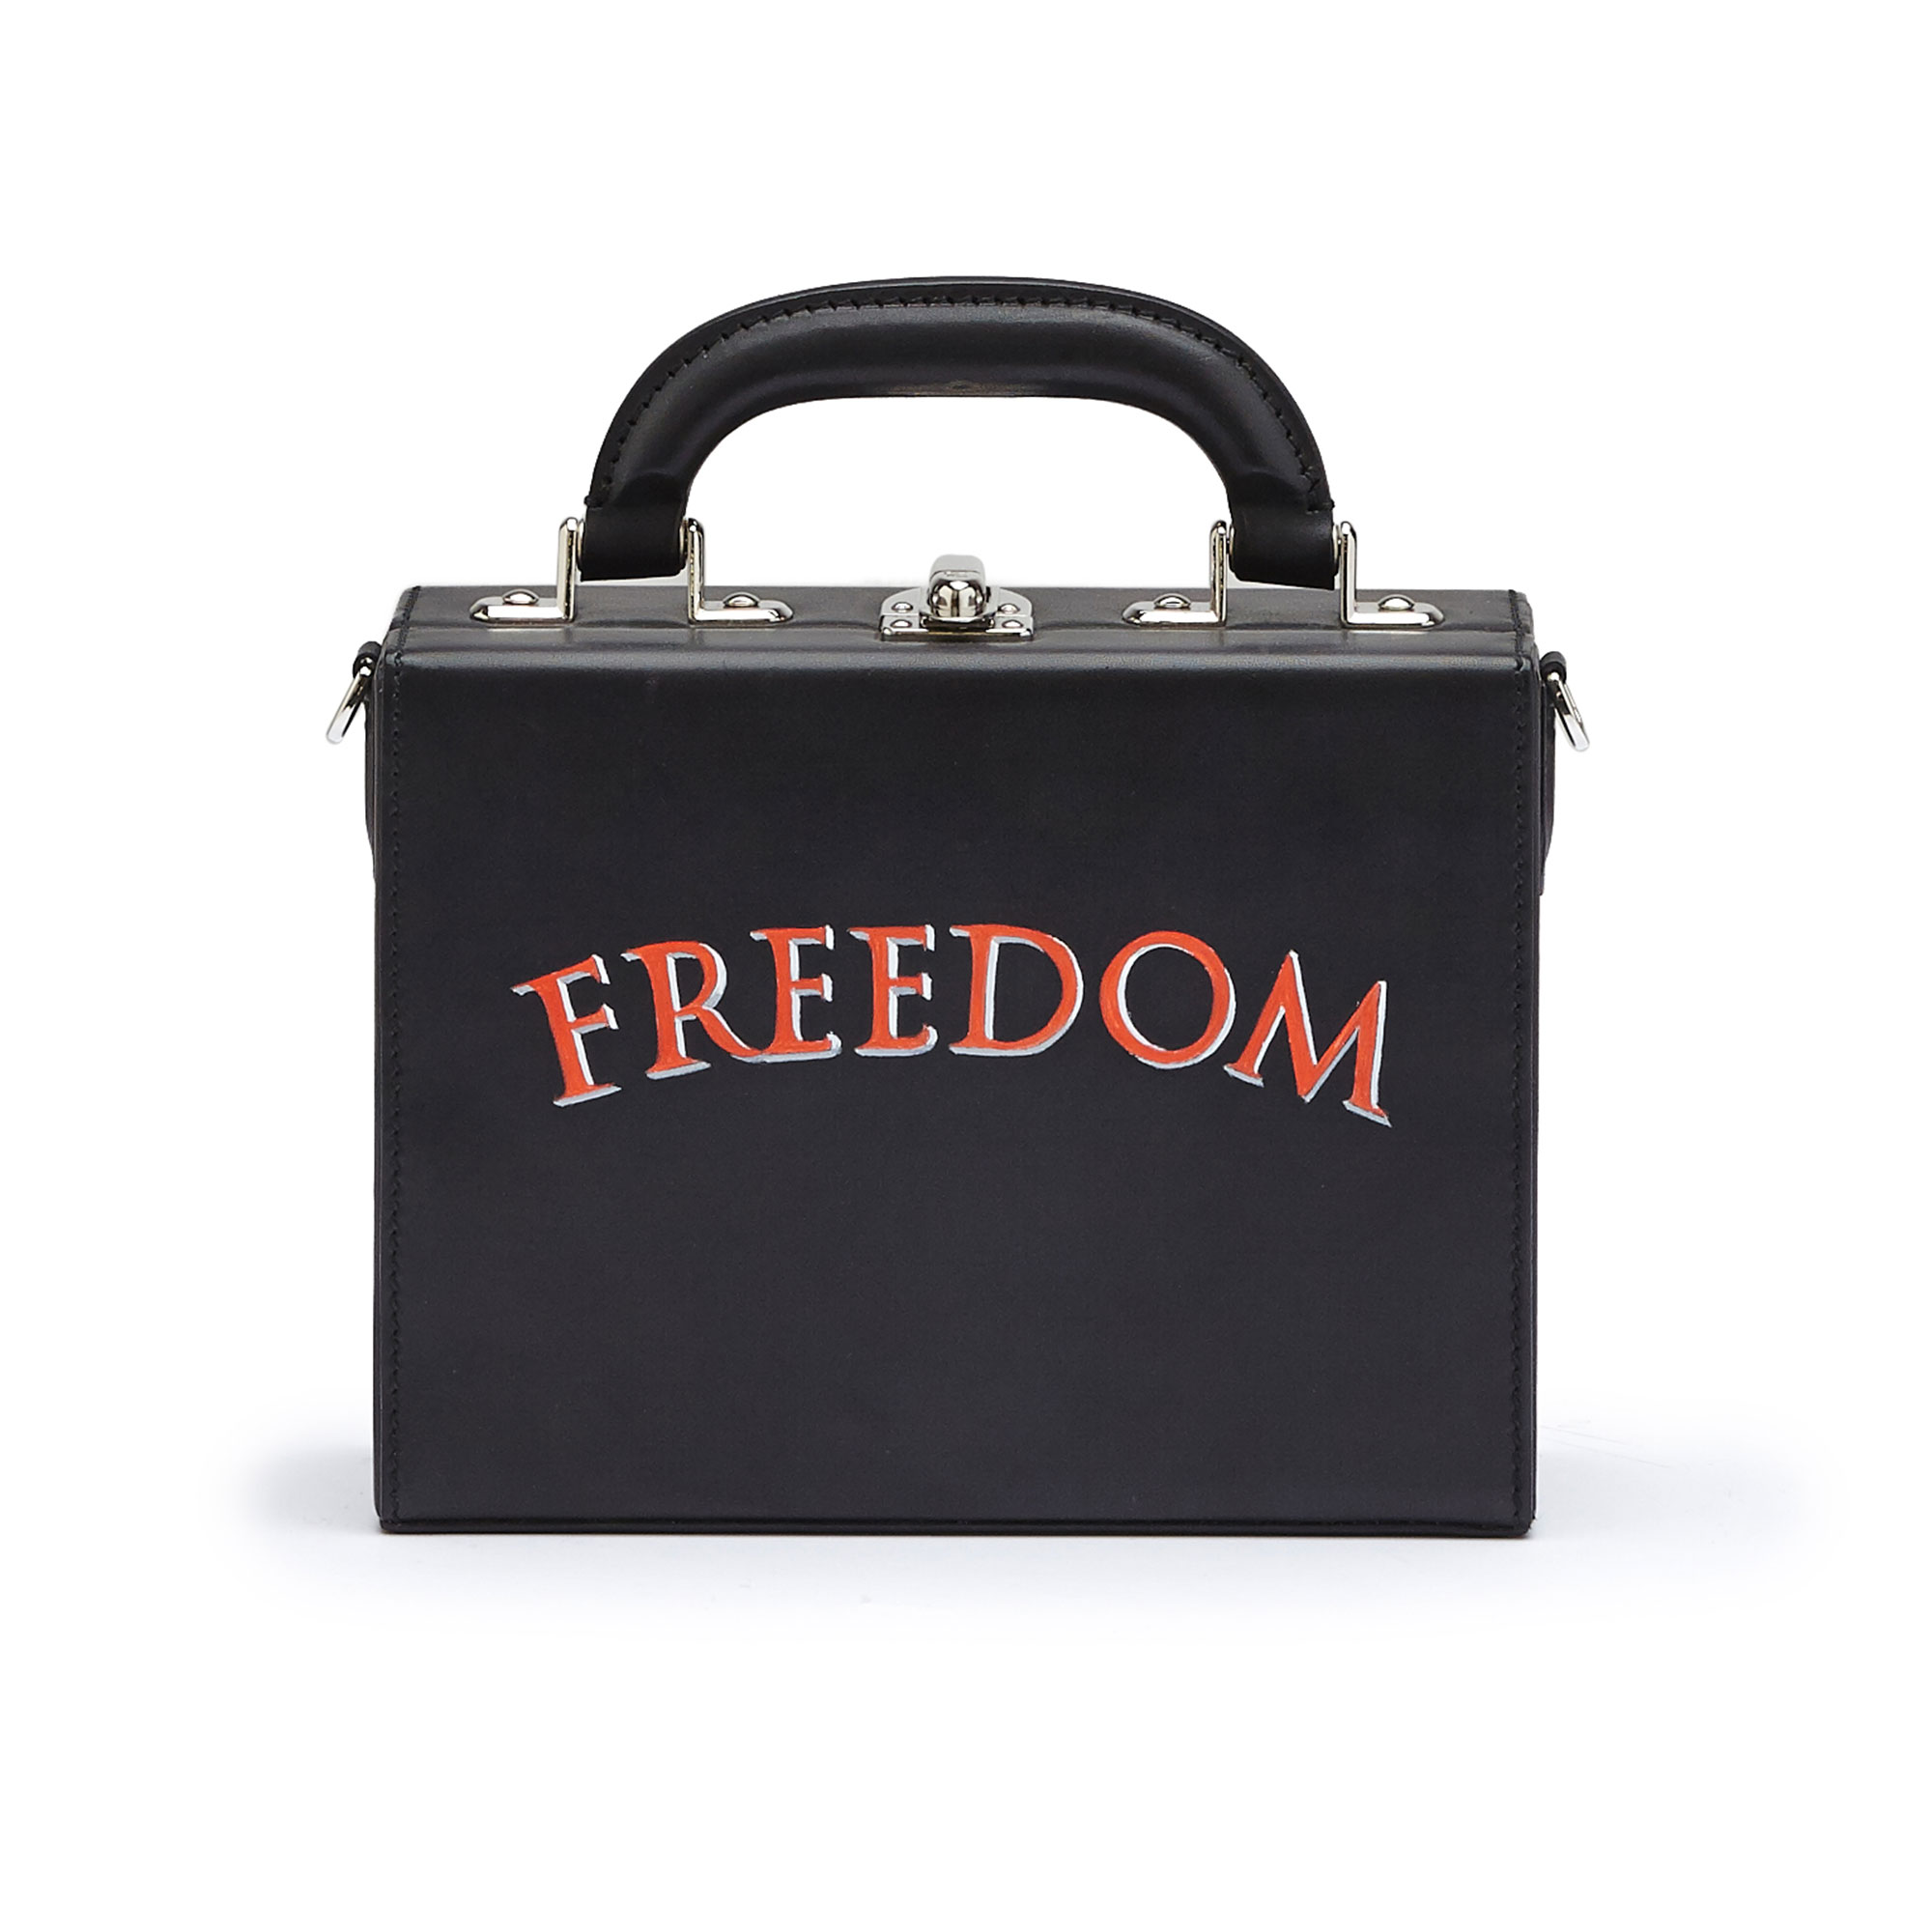 The black with writing freedom french calf Mini Squared Bertoncina bag by Bertoni 1949 01